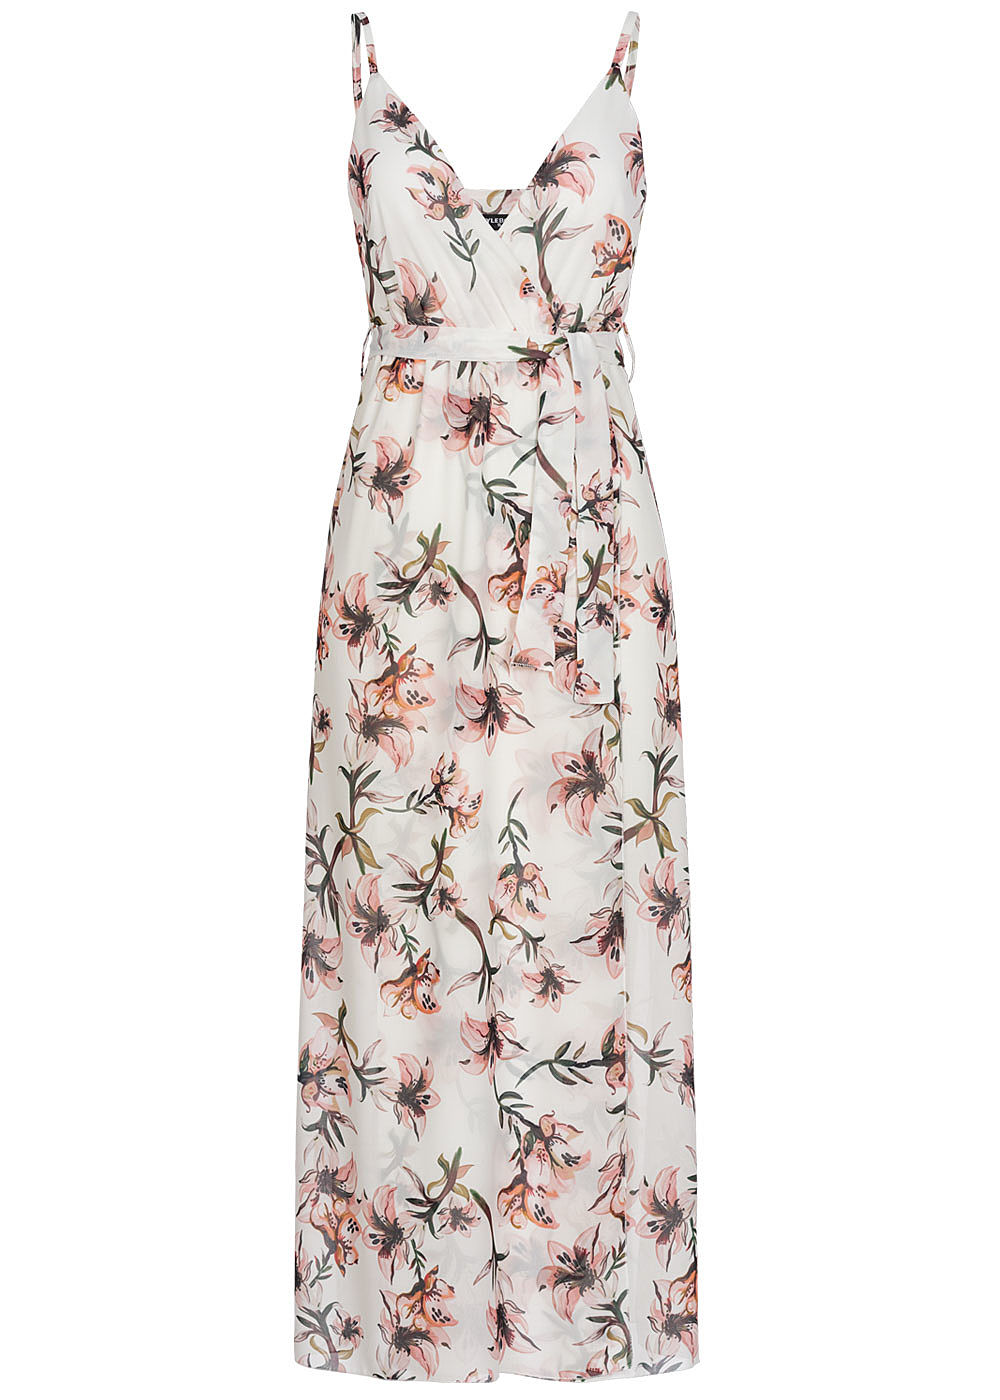 Styleboom Fashion Damen Belted Wrap V-Neck Maxi Dress Flower Print weiss rosa - Art.-Nr.: 19076584